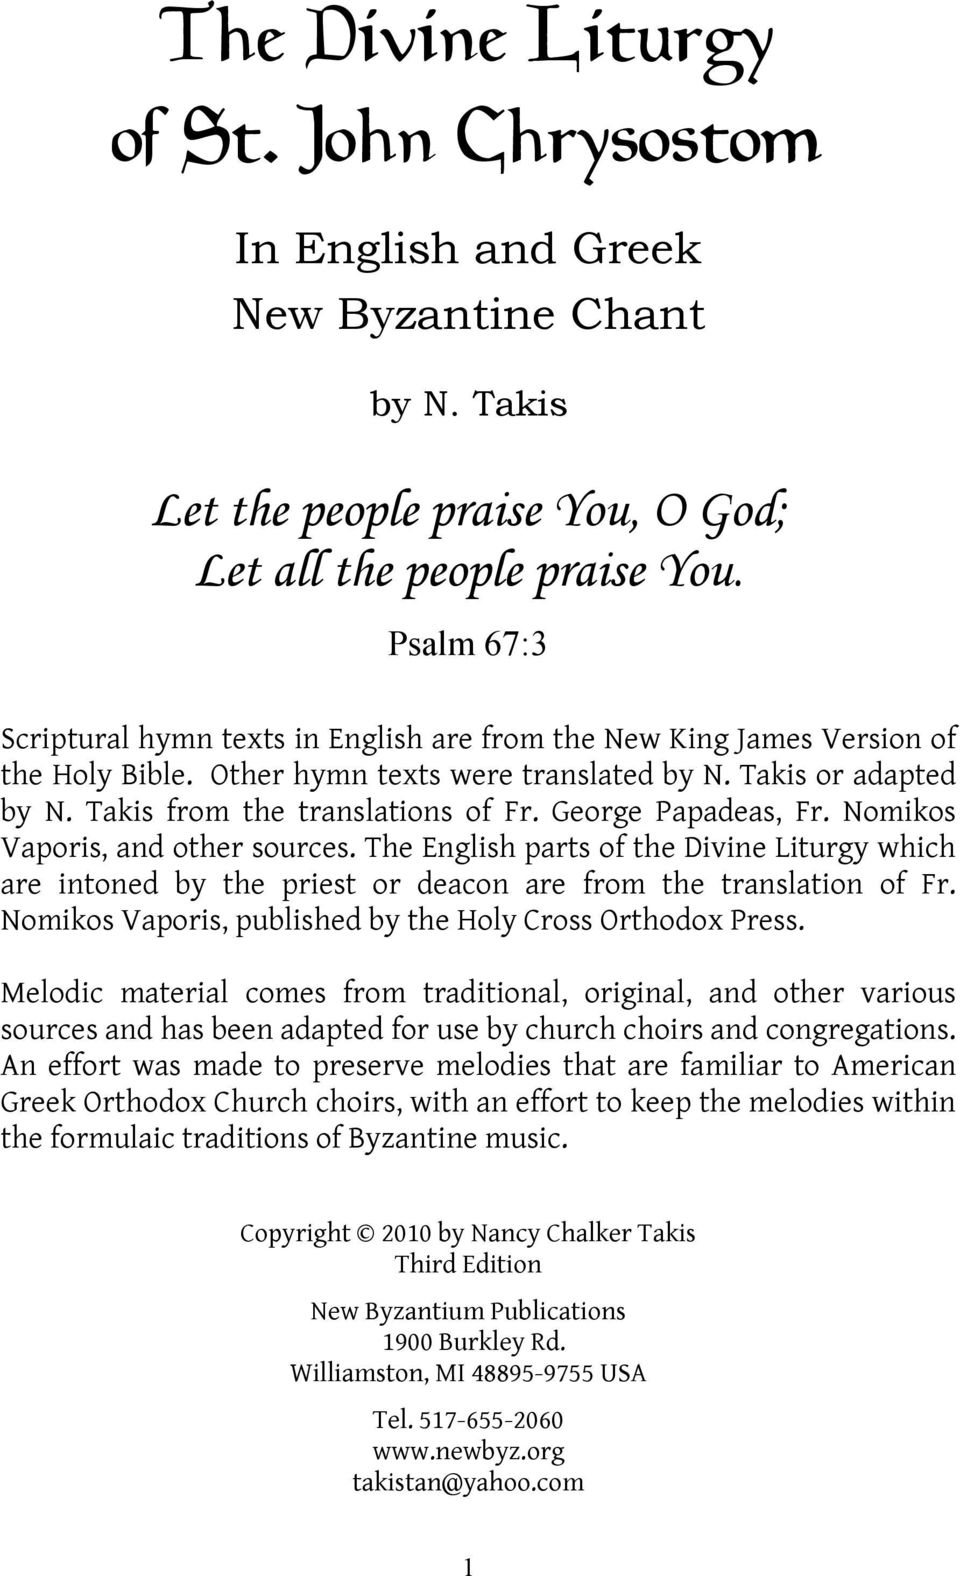 George Papadeas, Fr. Nomikos Vaporis, and other sources. The English parts of the Divine Liturgy which are intoned by the priest or deacon are from the translation of Fr.